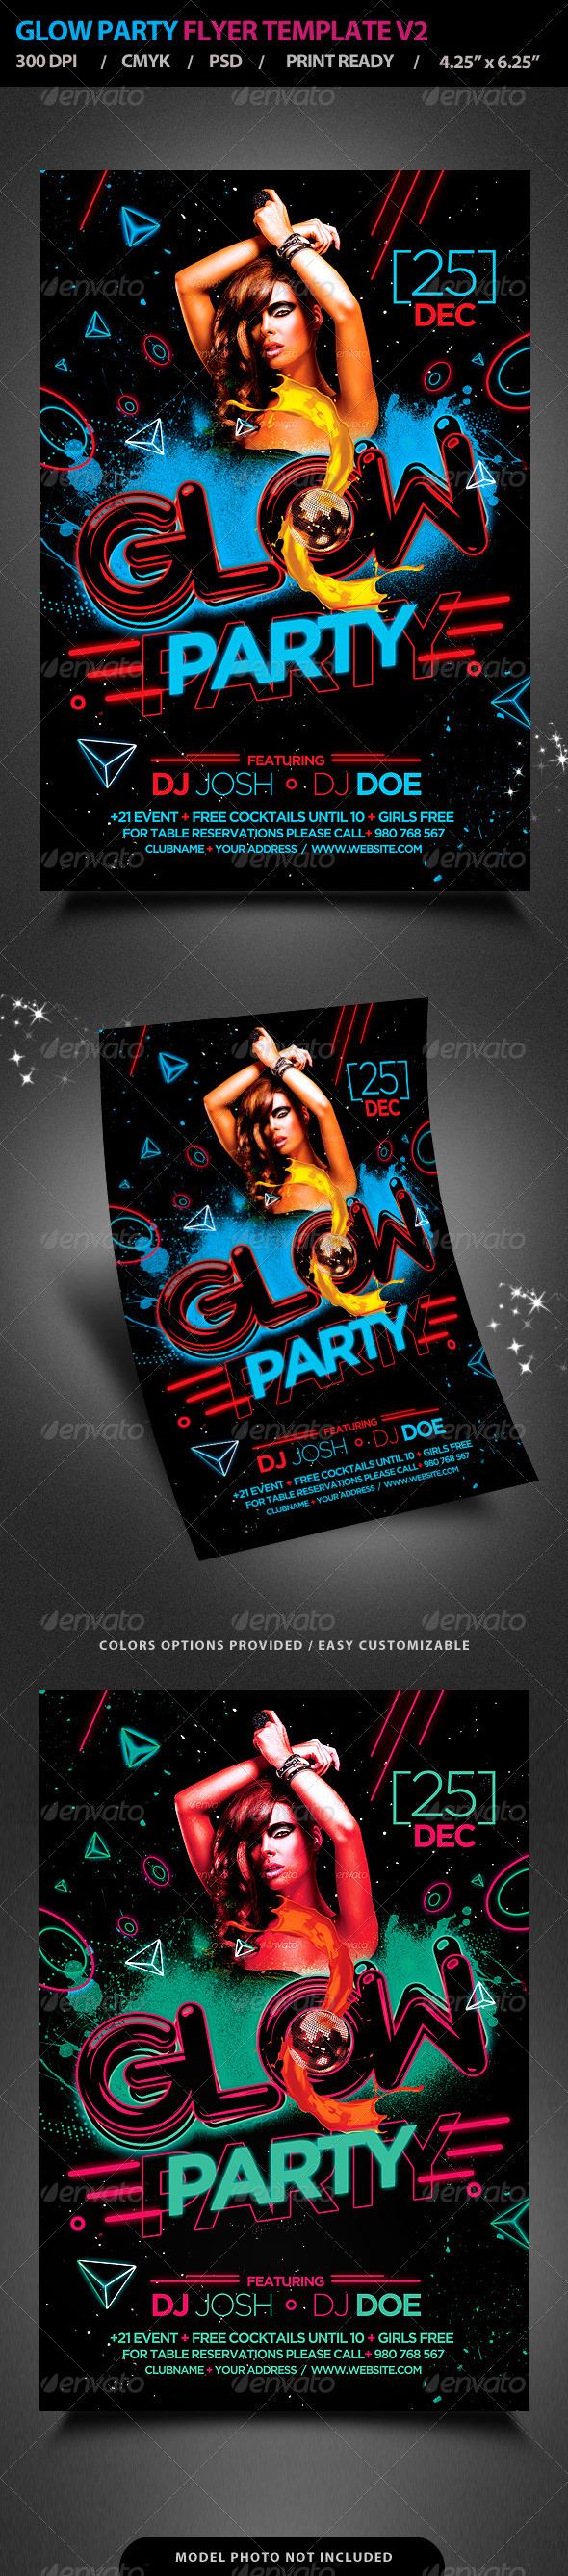 Glow Party Flyer Template V2  - Clubs & Parties Events